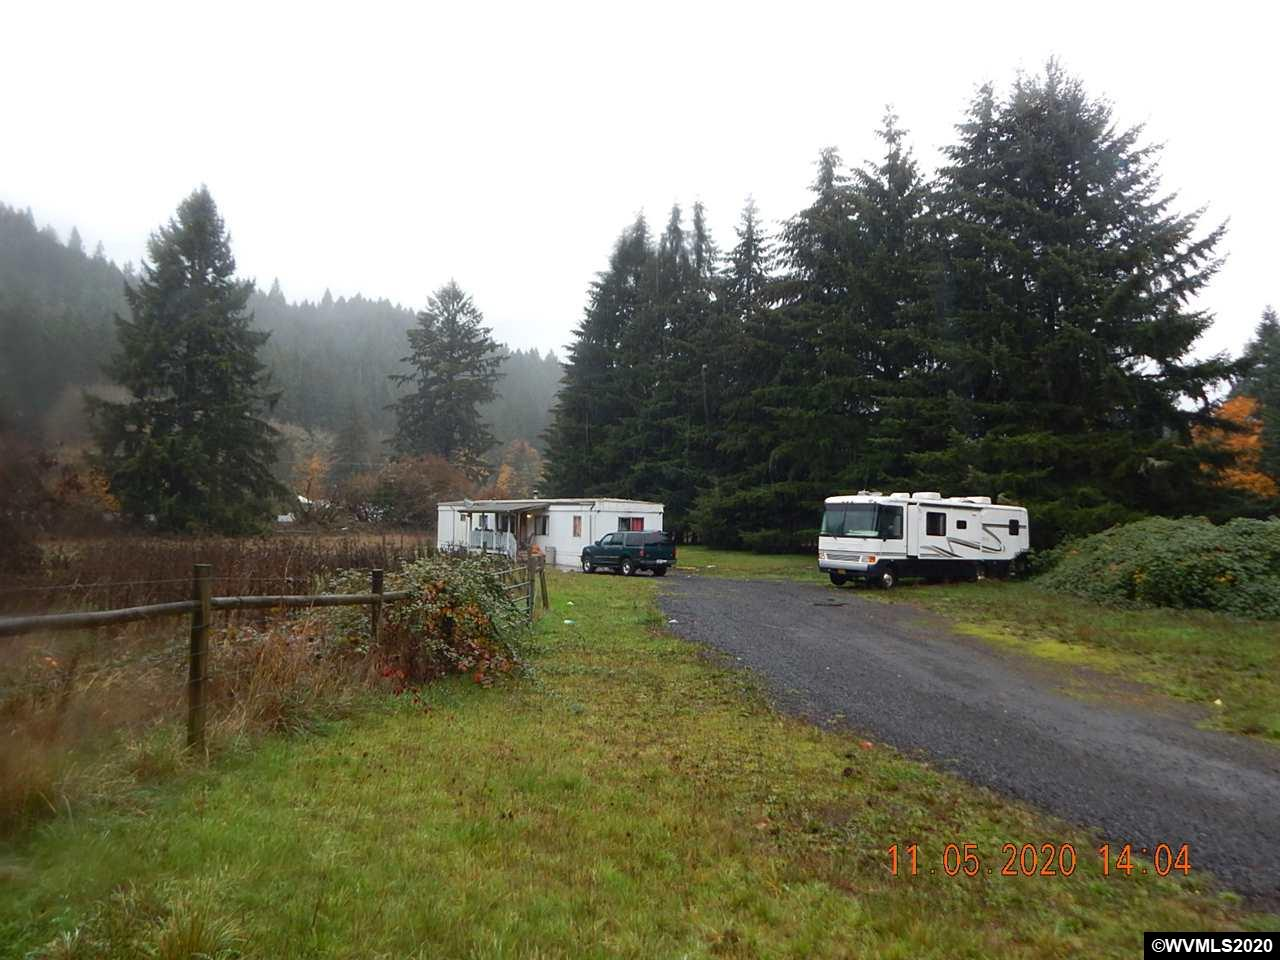 Accepted Offer with Contingencies. 1.50 acres with existing manufactured home.  Room for pasture, shop and a nice treed homesite.  Gravel pad already in place in ideal spot for shop.  Livable home or great affordable spot to build new.  Fully fenced lot with cross fenced pasture.  Seller will now consider carrying a contract with 6% rate, 15 year (or less) amortization & minimum of 20% down.